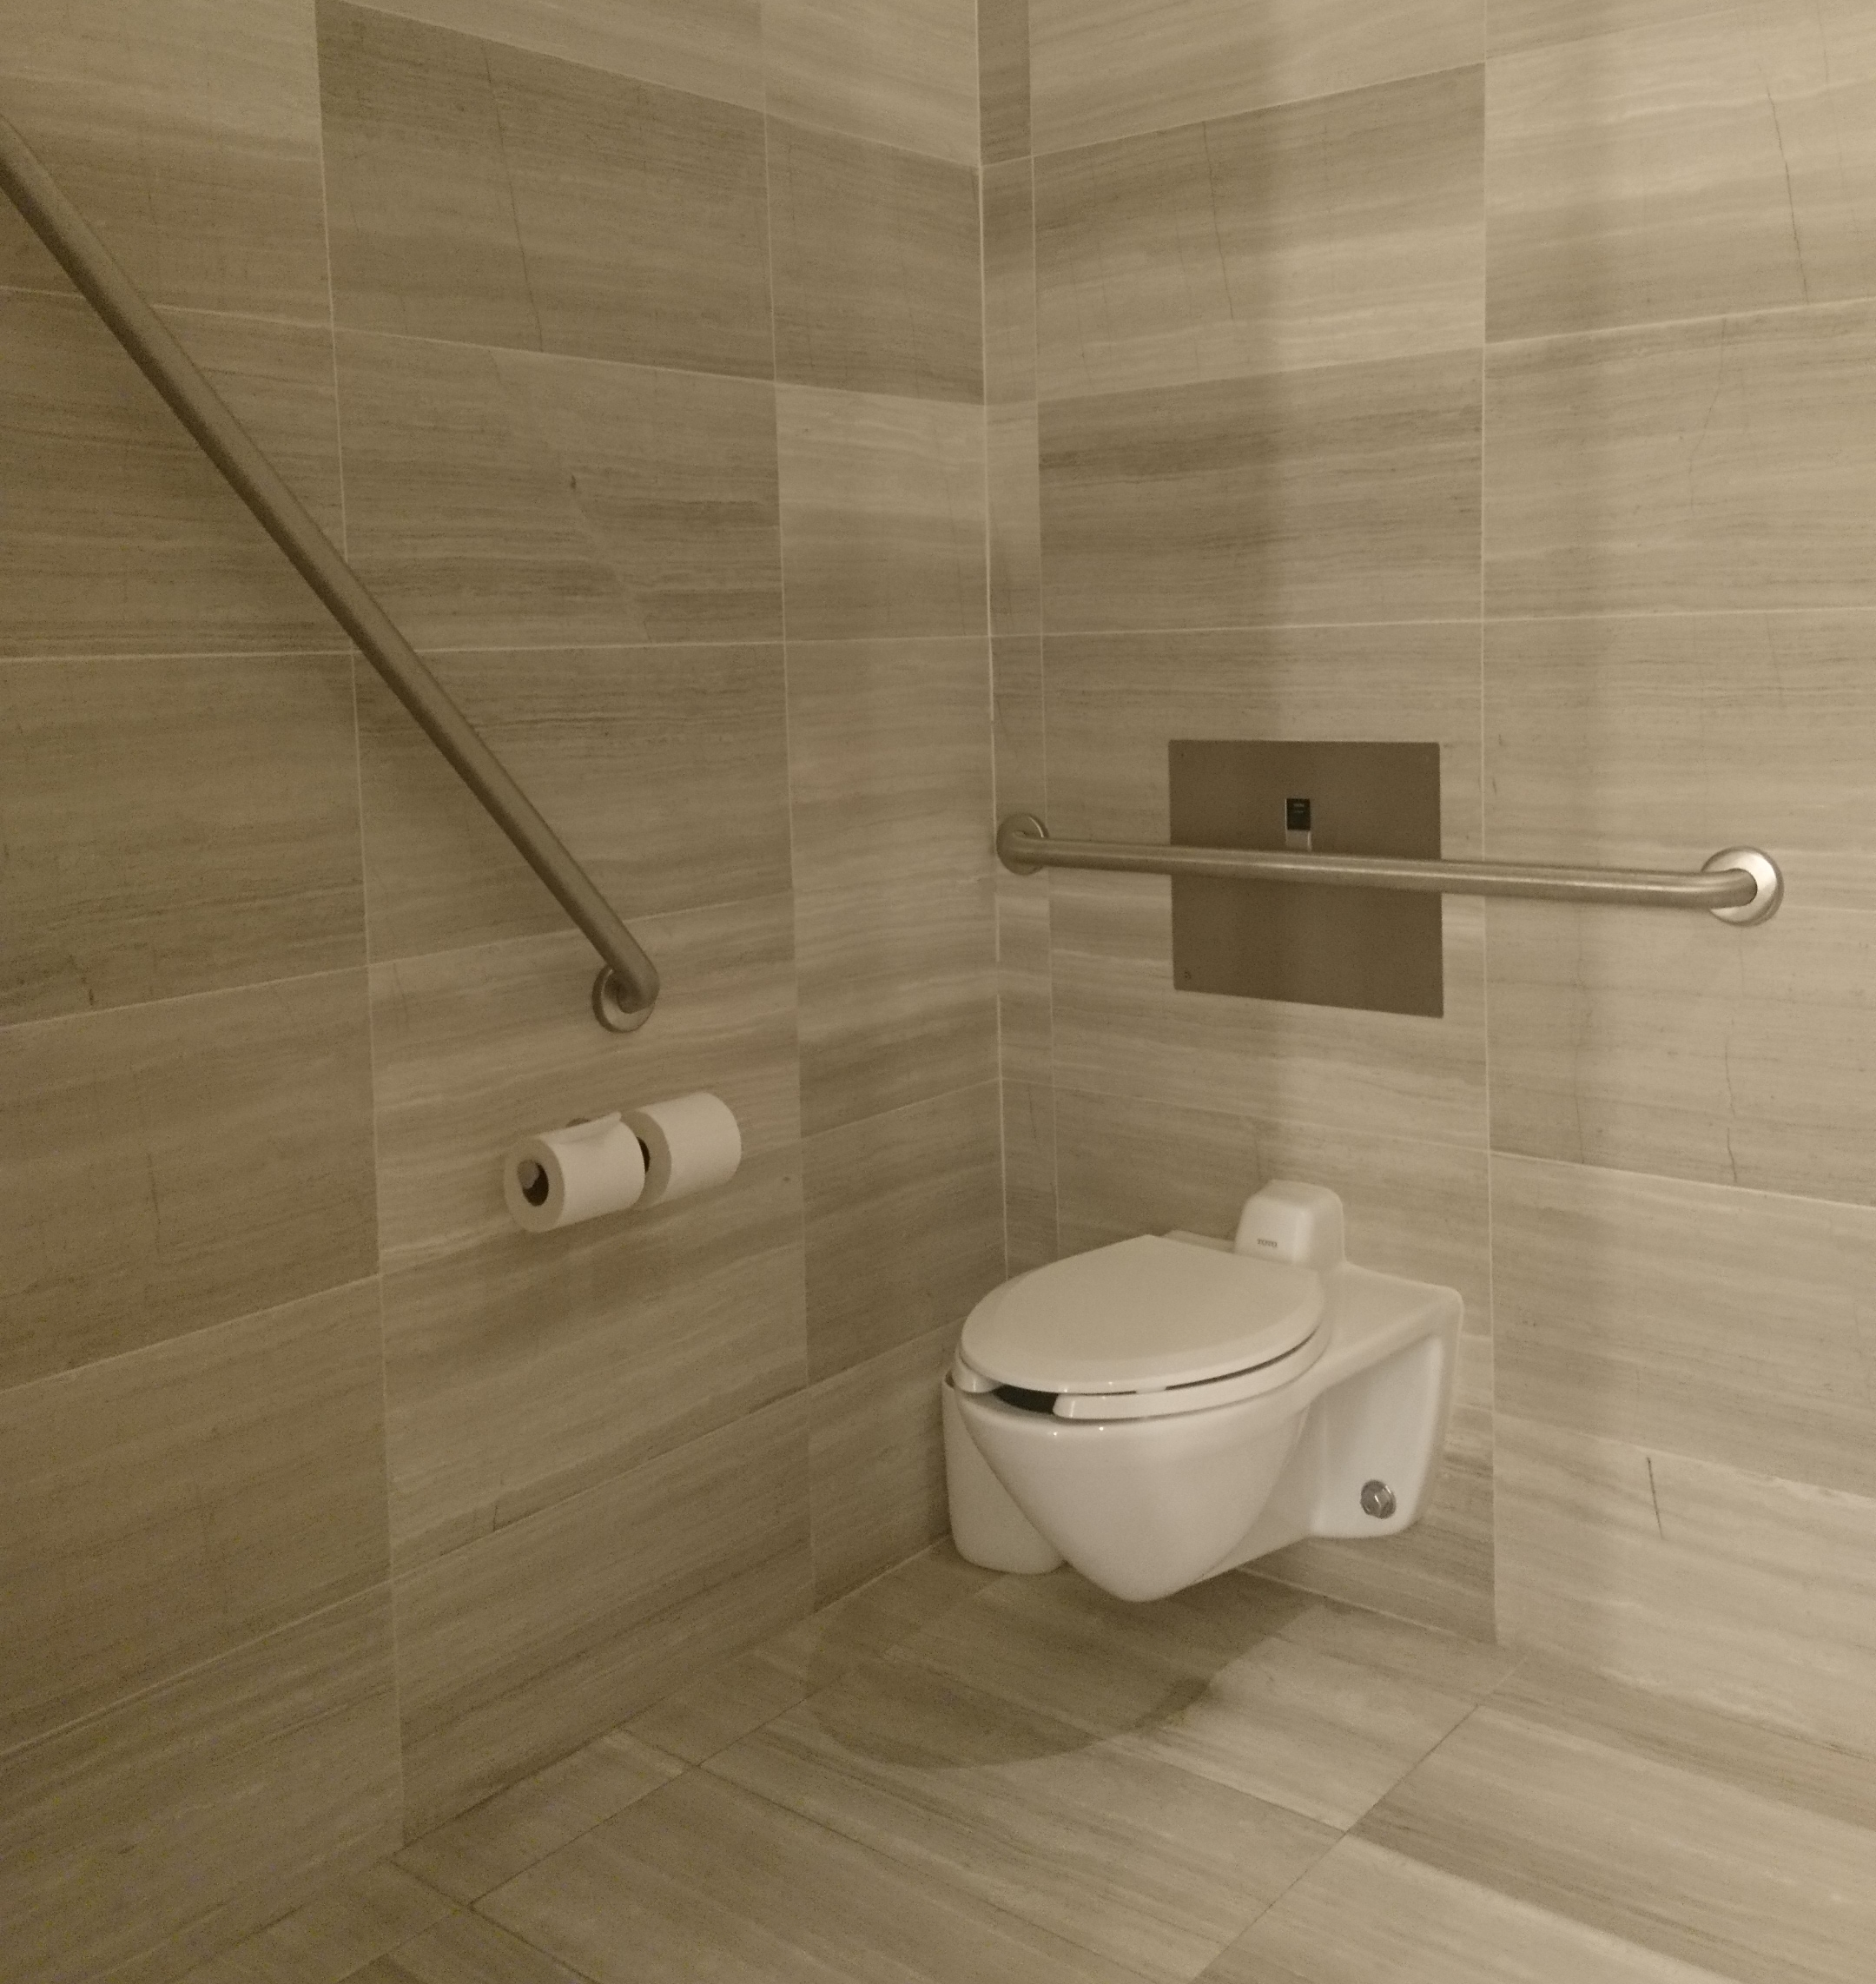 Picture of grab bars and accessible space in washroom stall